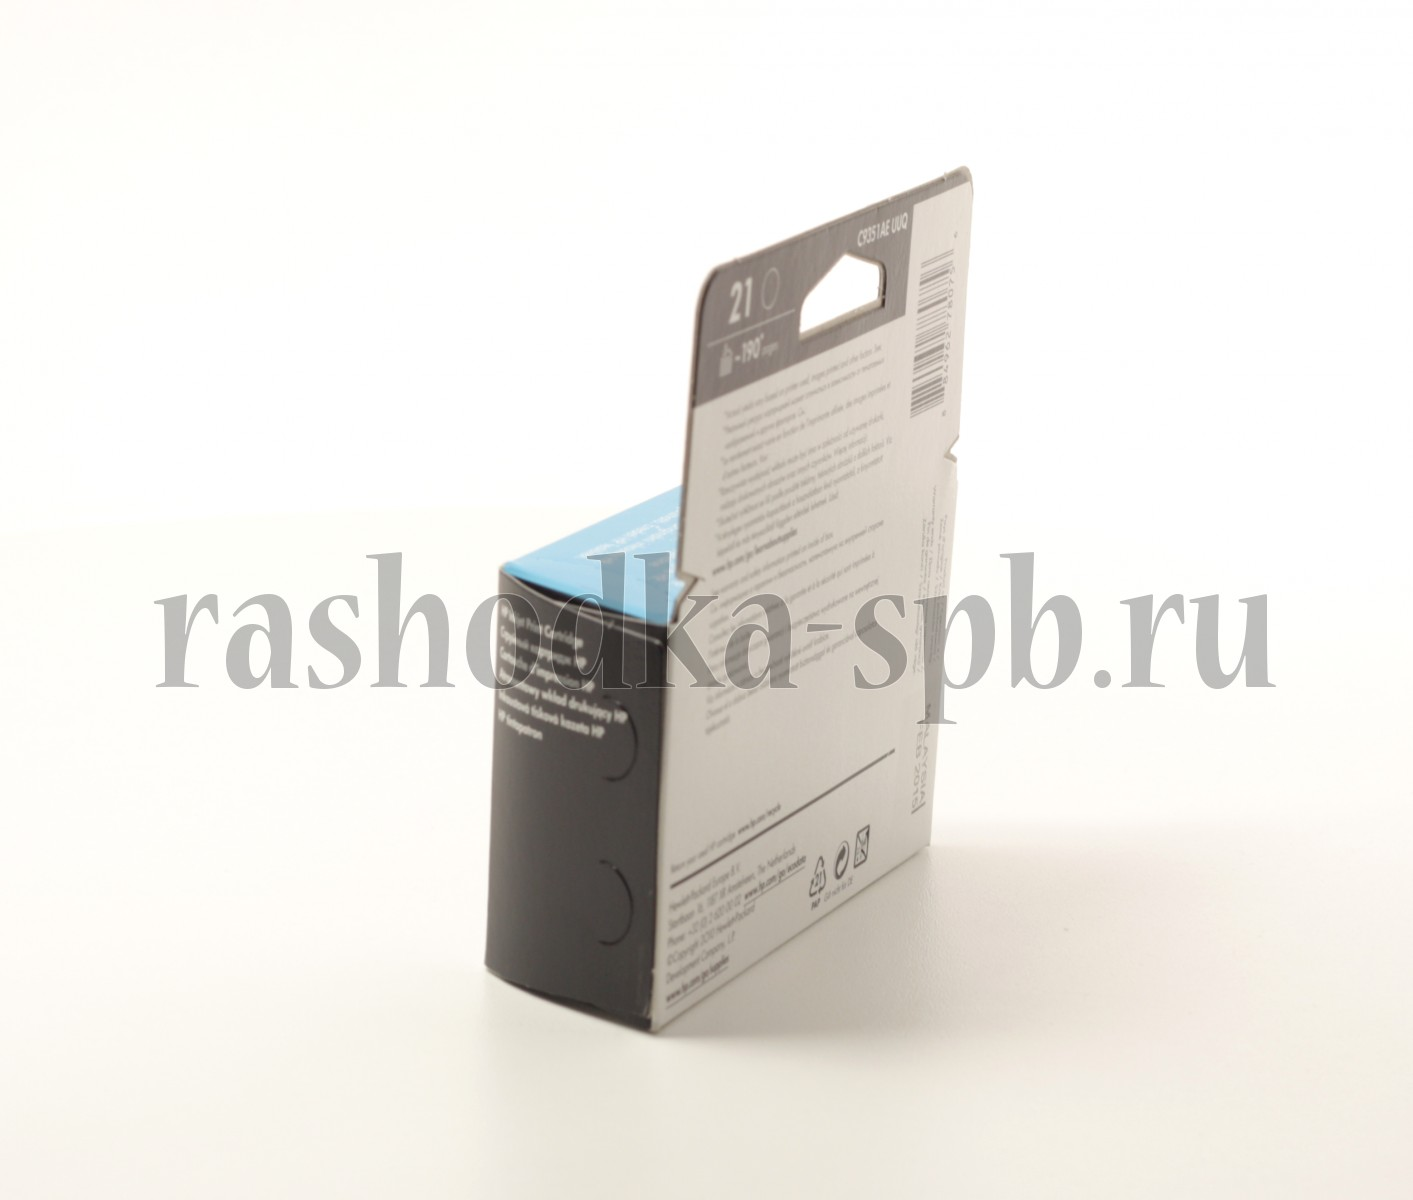 Купить C9351AE картридж HP 21 C9351AE (black), фото 2